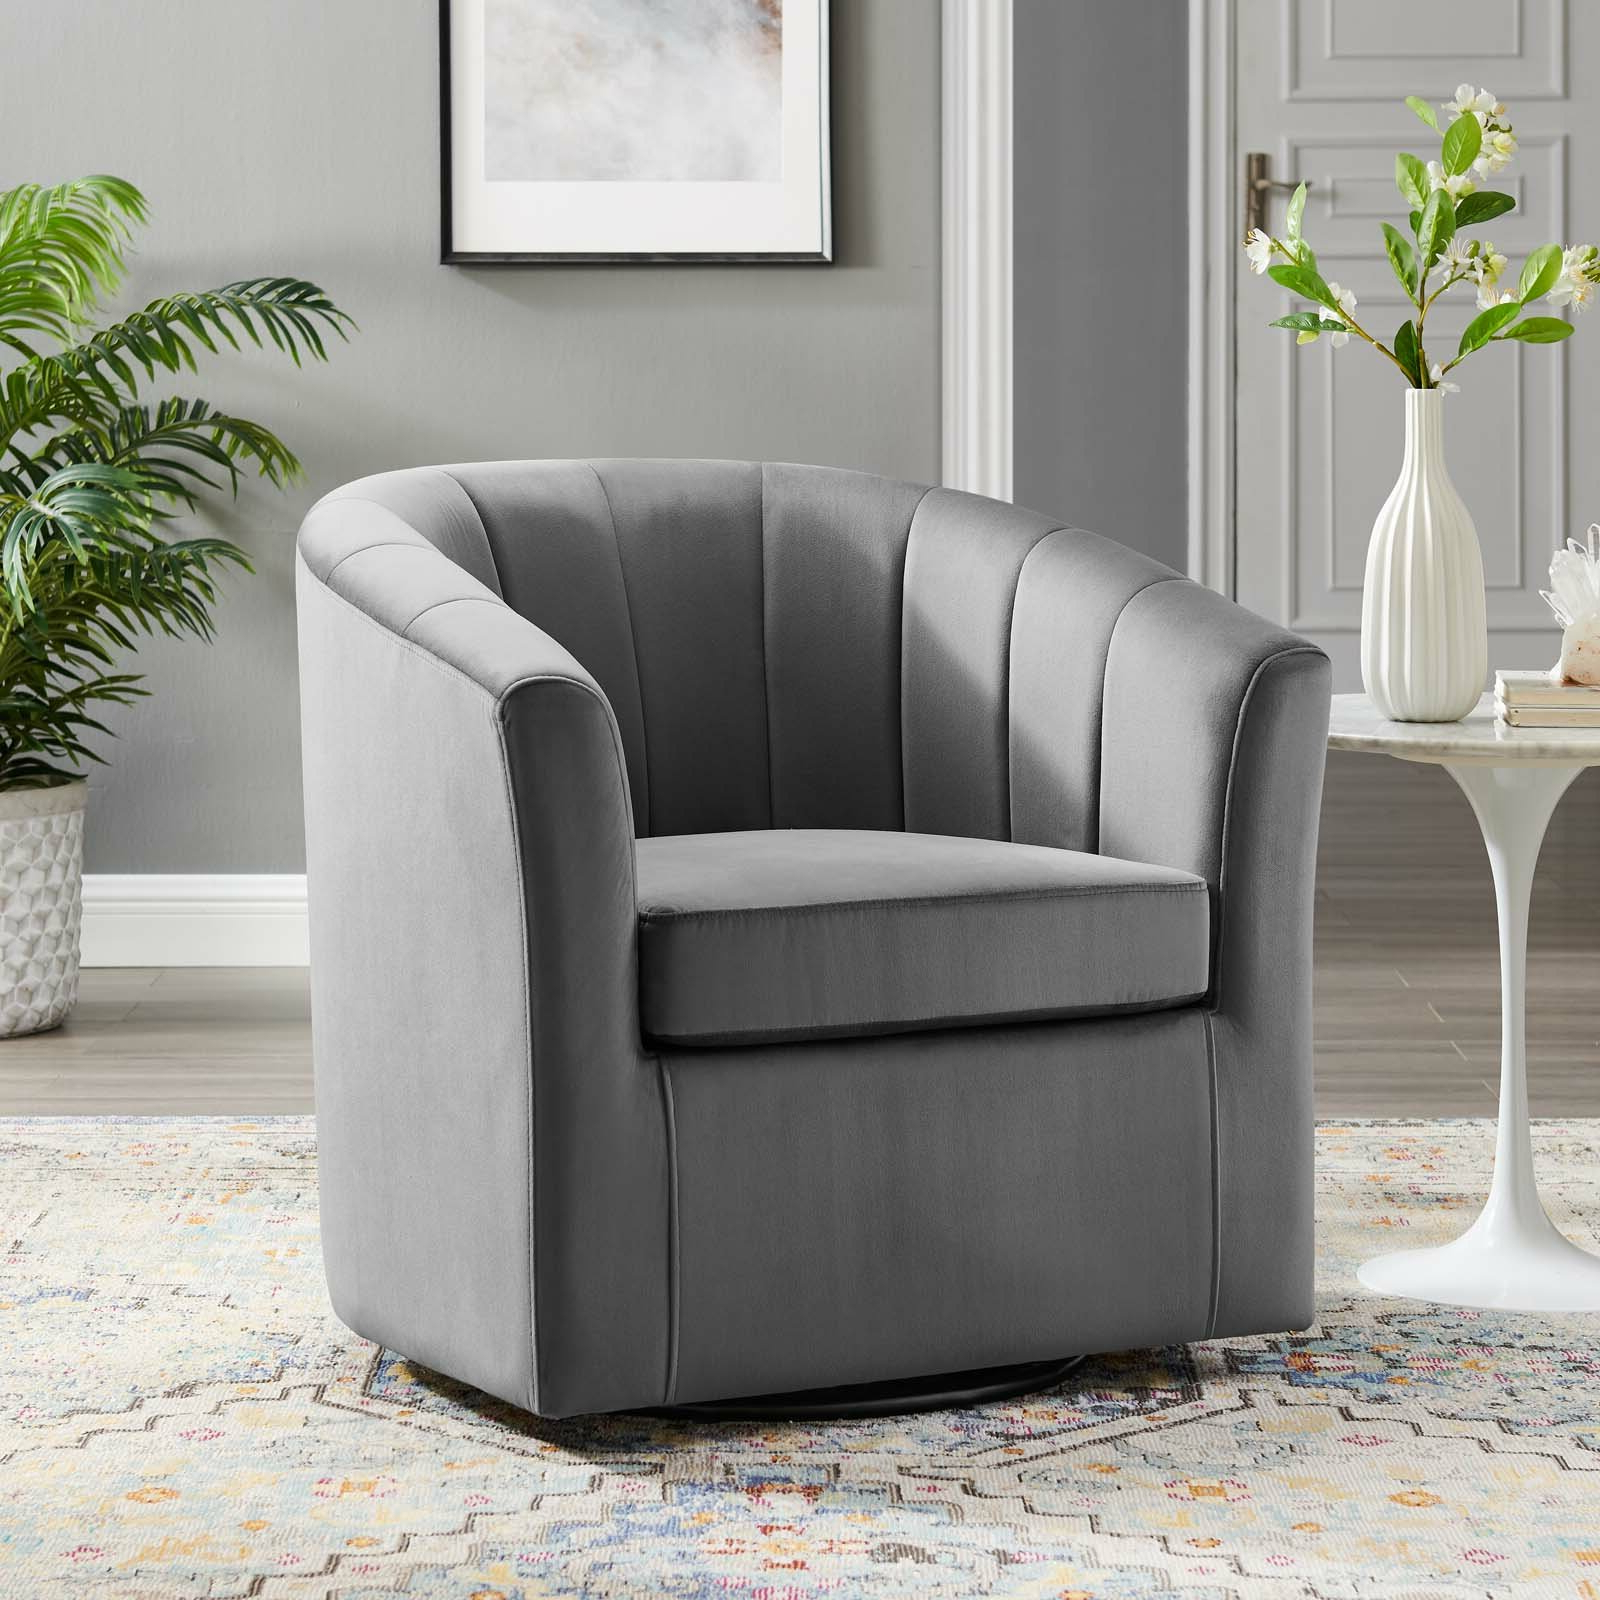 Best And Newest Ziaa Barrel Chairs Intended For Ziaa Performance Velvet Swivel Barrel Chair (View 5 of 20)